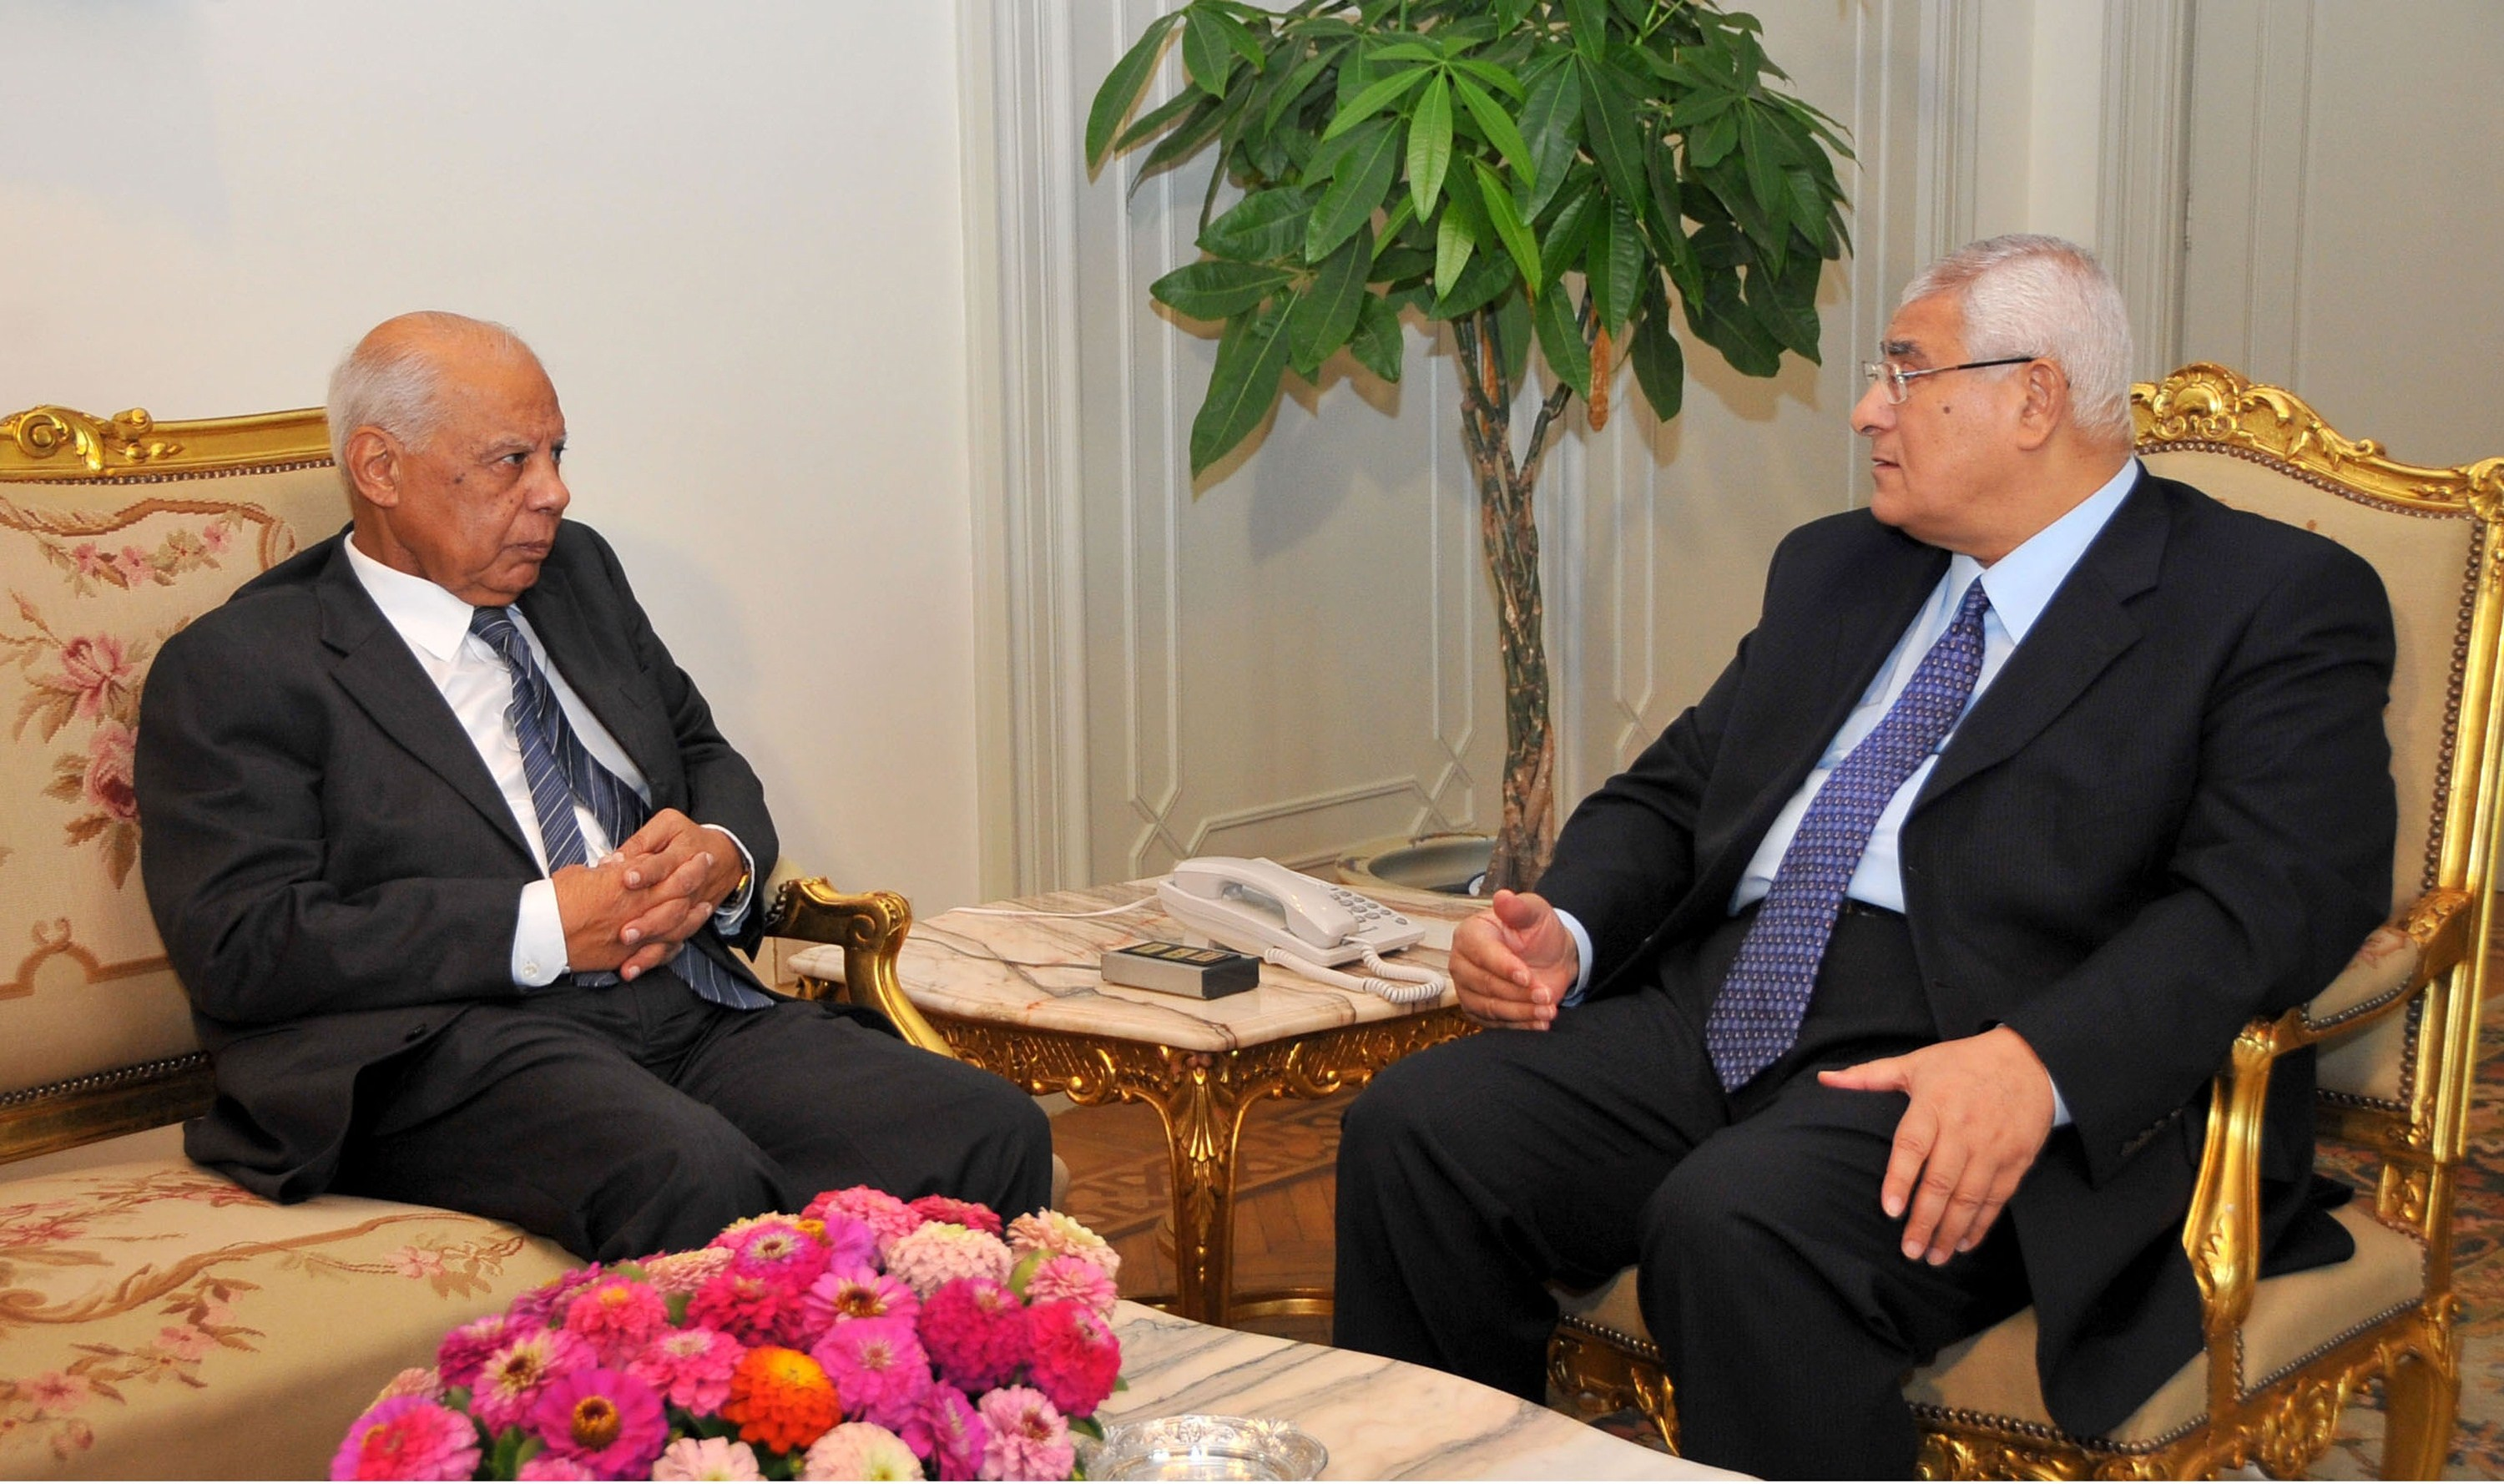 Egypt's interim president Adly Mansour (R) meeting with new-appointed Prime Minister Hazem al-Beblawi (AFP PHOTO / EGYPTIAN PRESIDENCY)